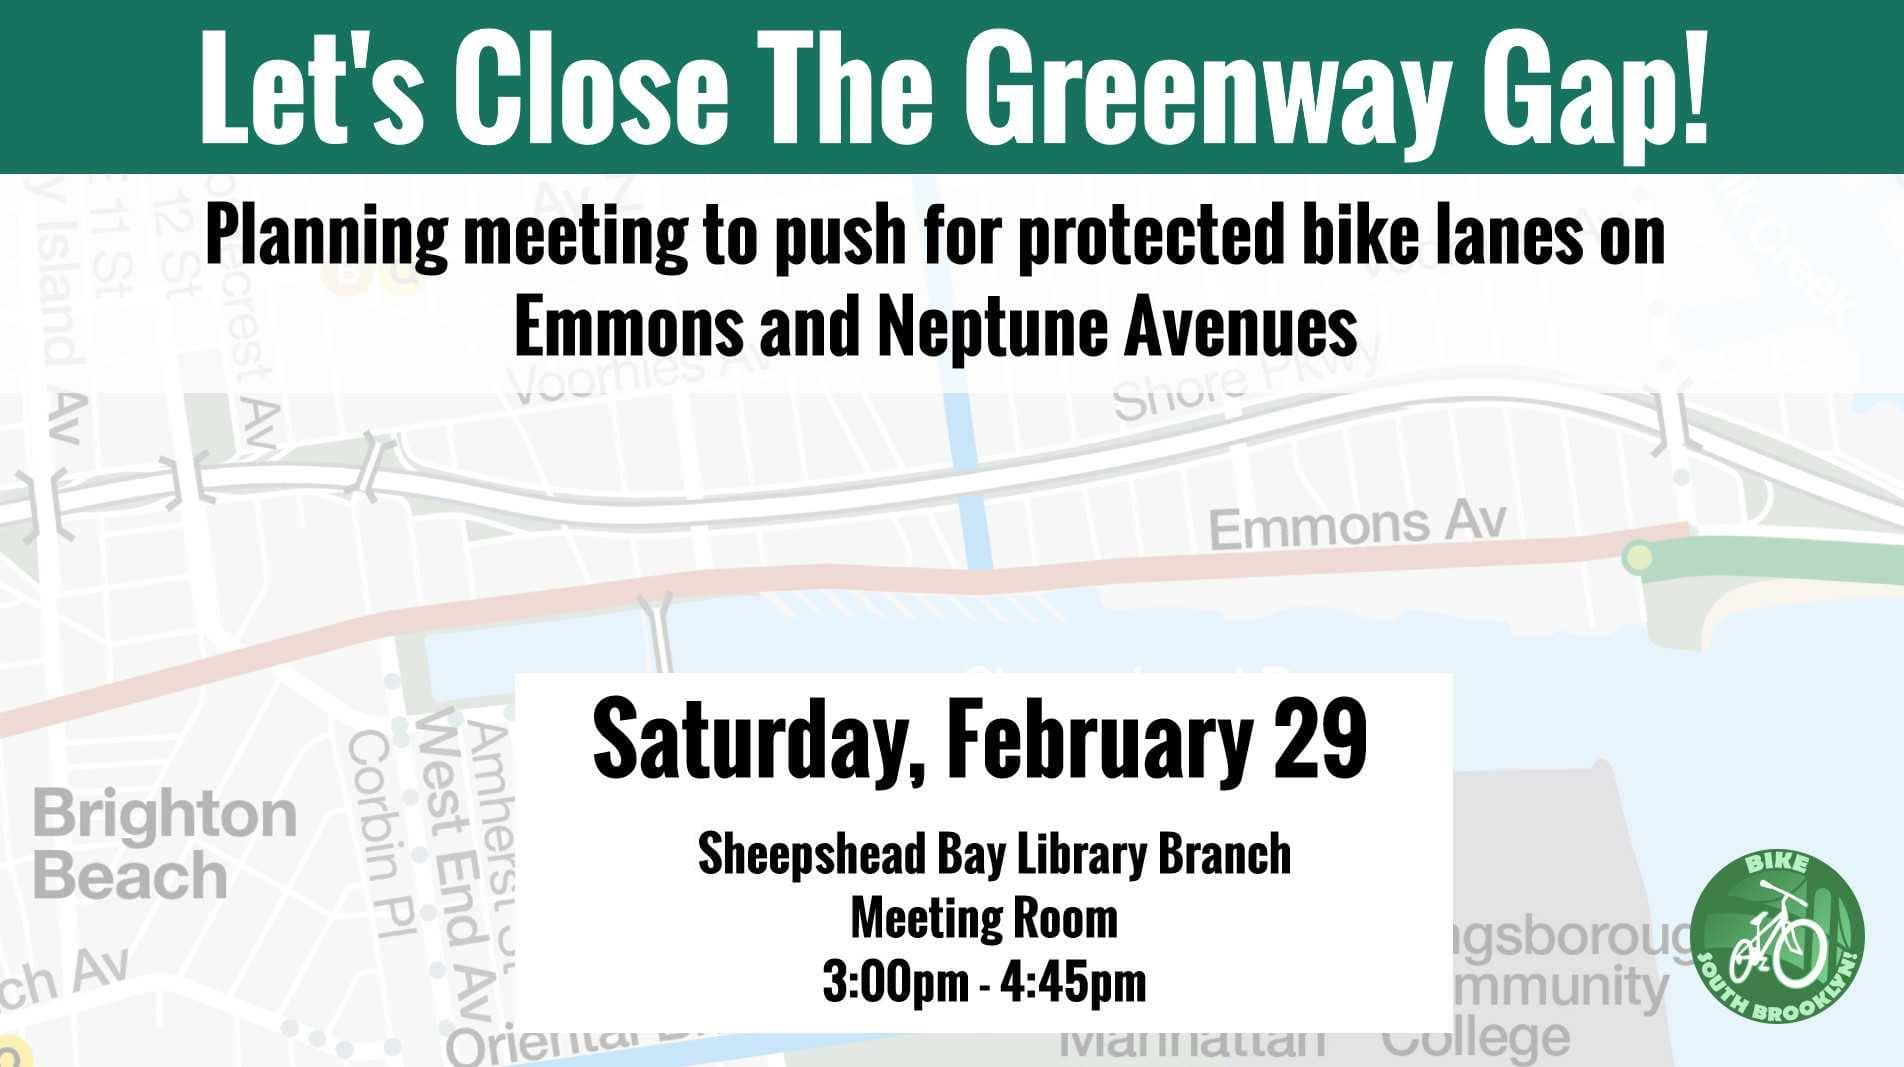 Banner image advertising the Sheepshead Bay planning meeting for Bike South Brooklyn on February 29th 2020